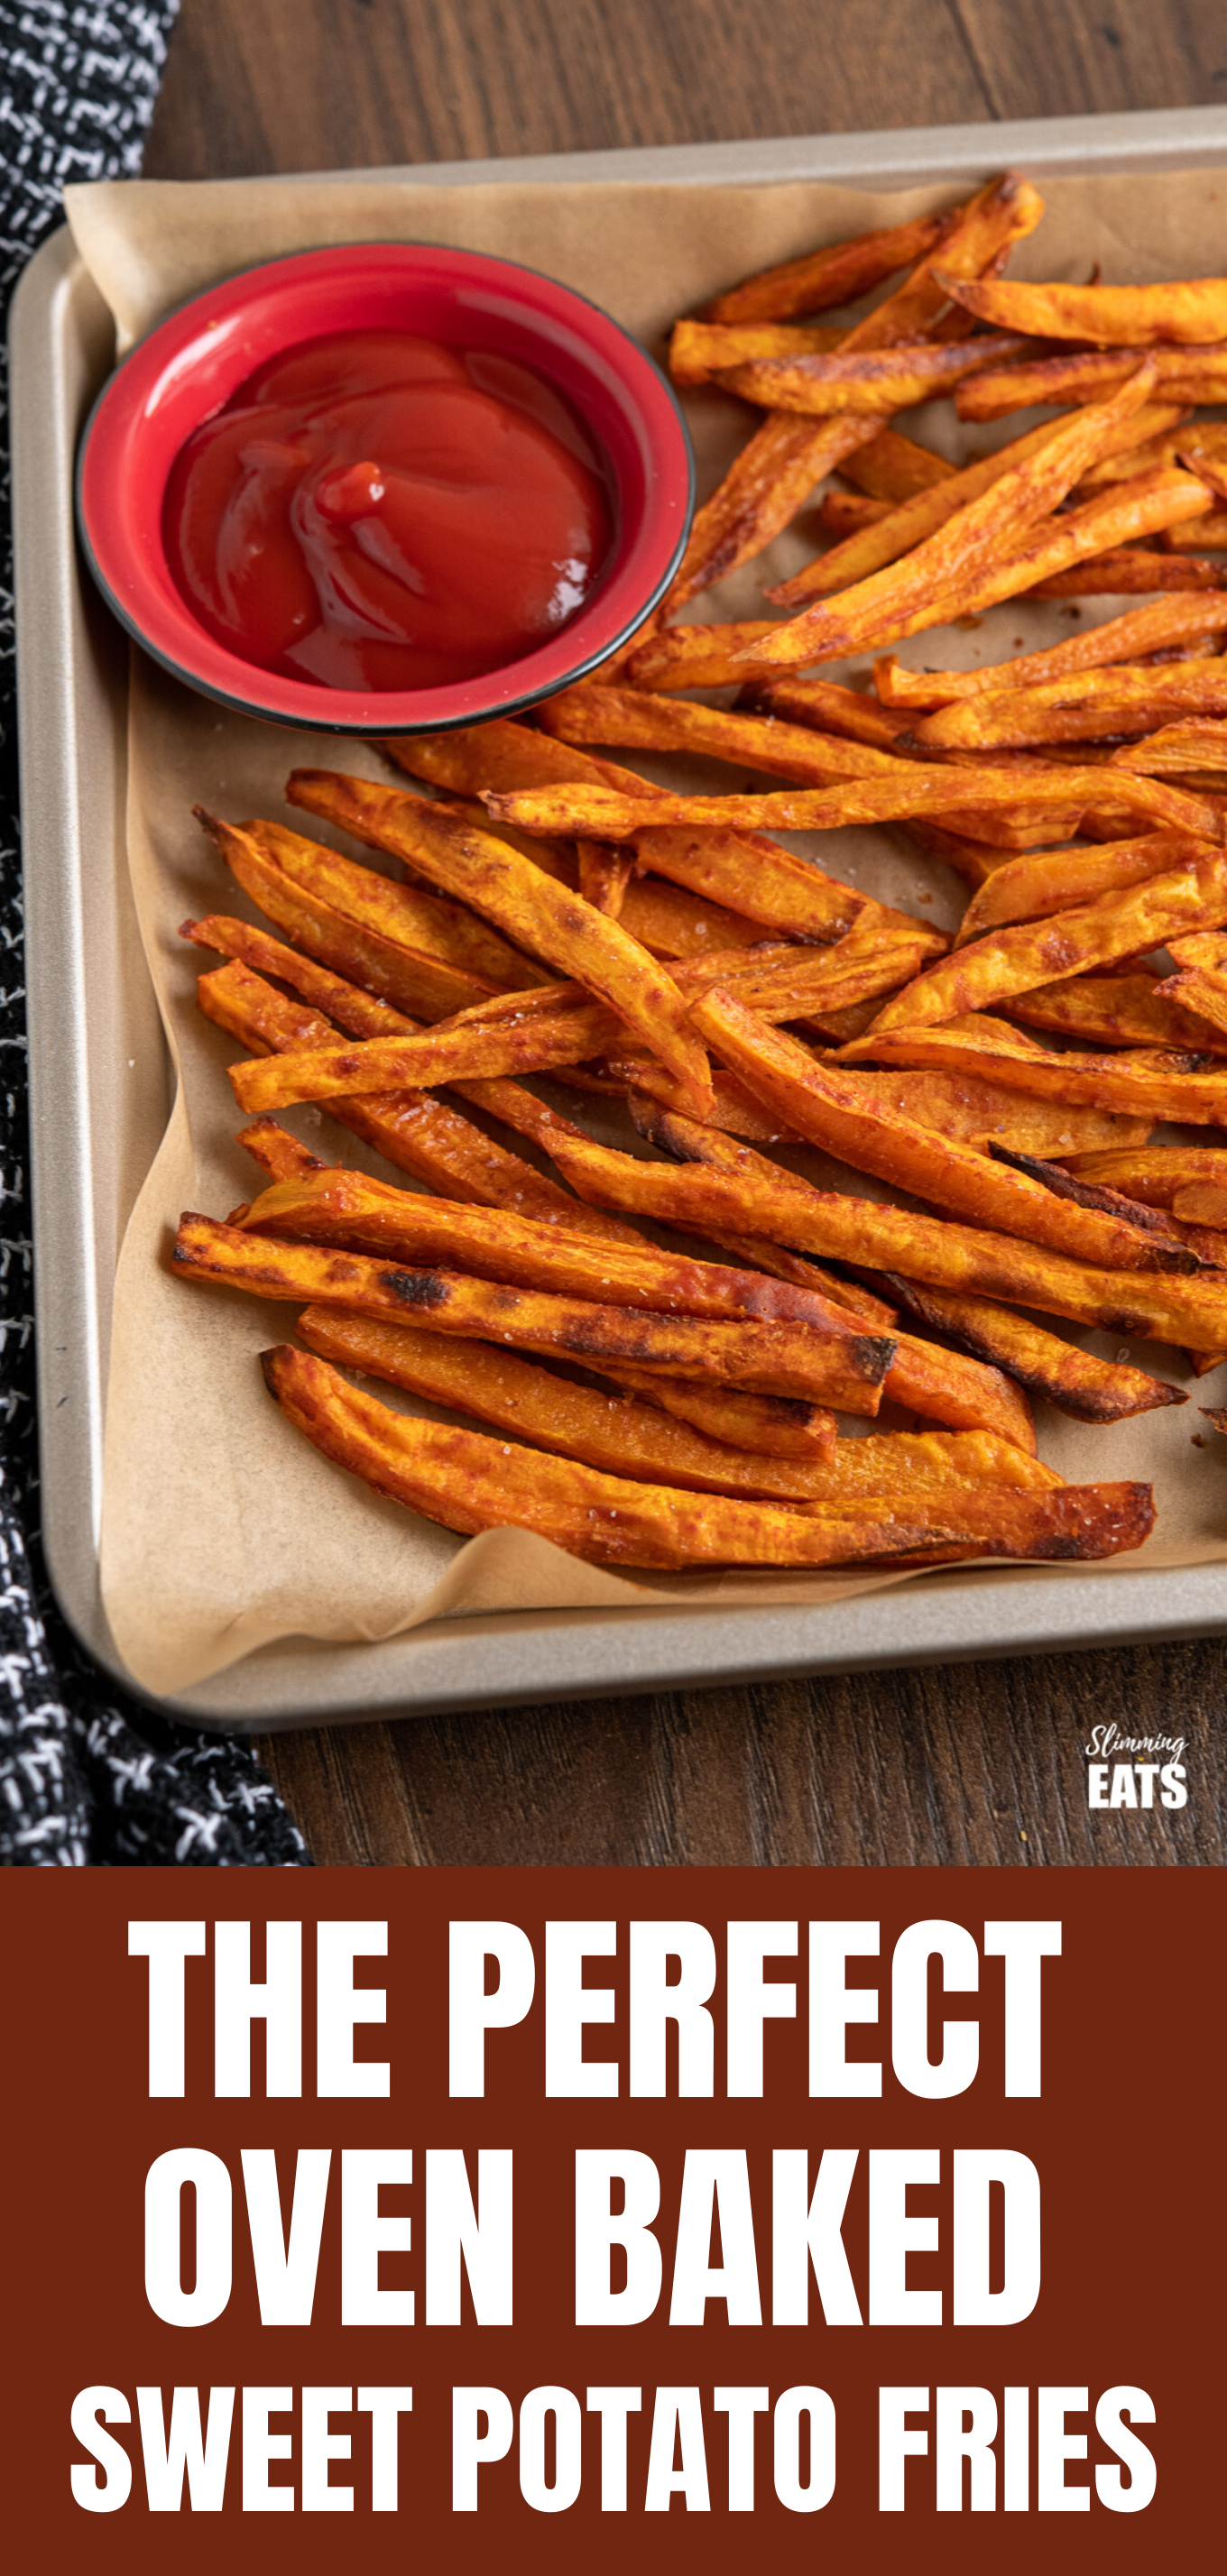 Sweet Potato Fries feature pin image